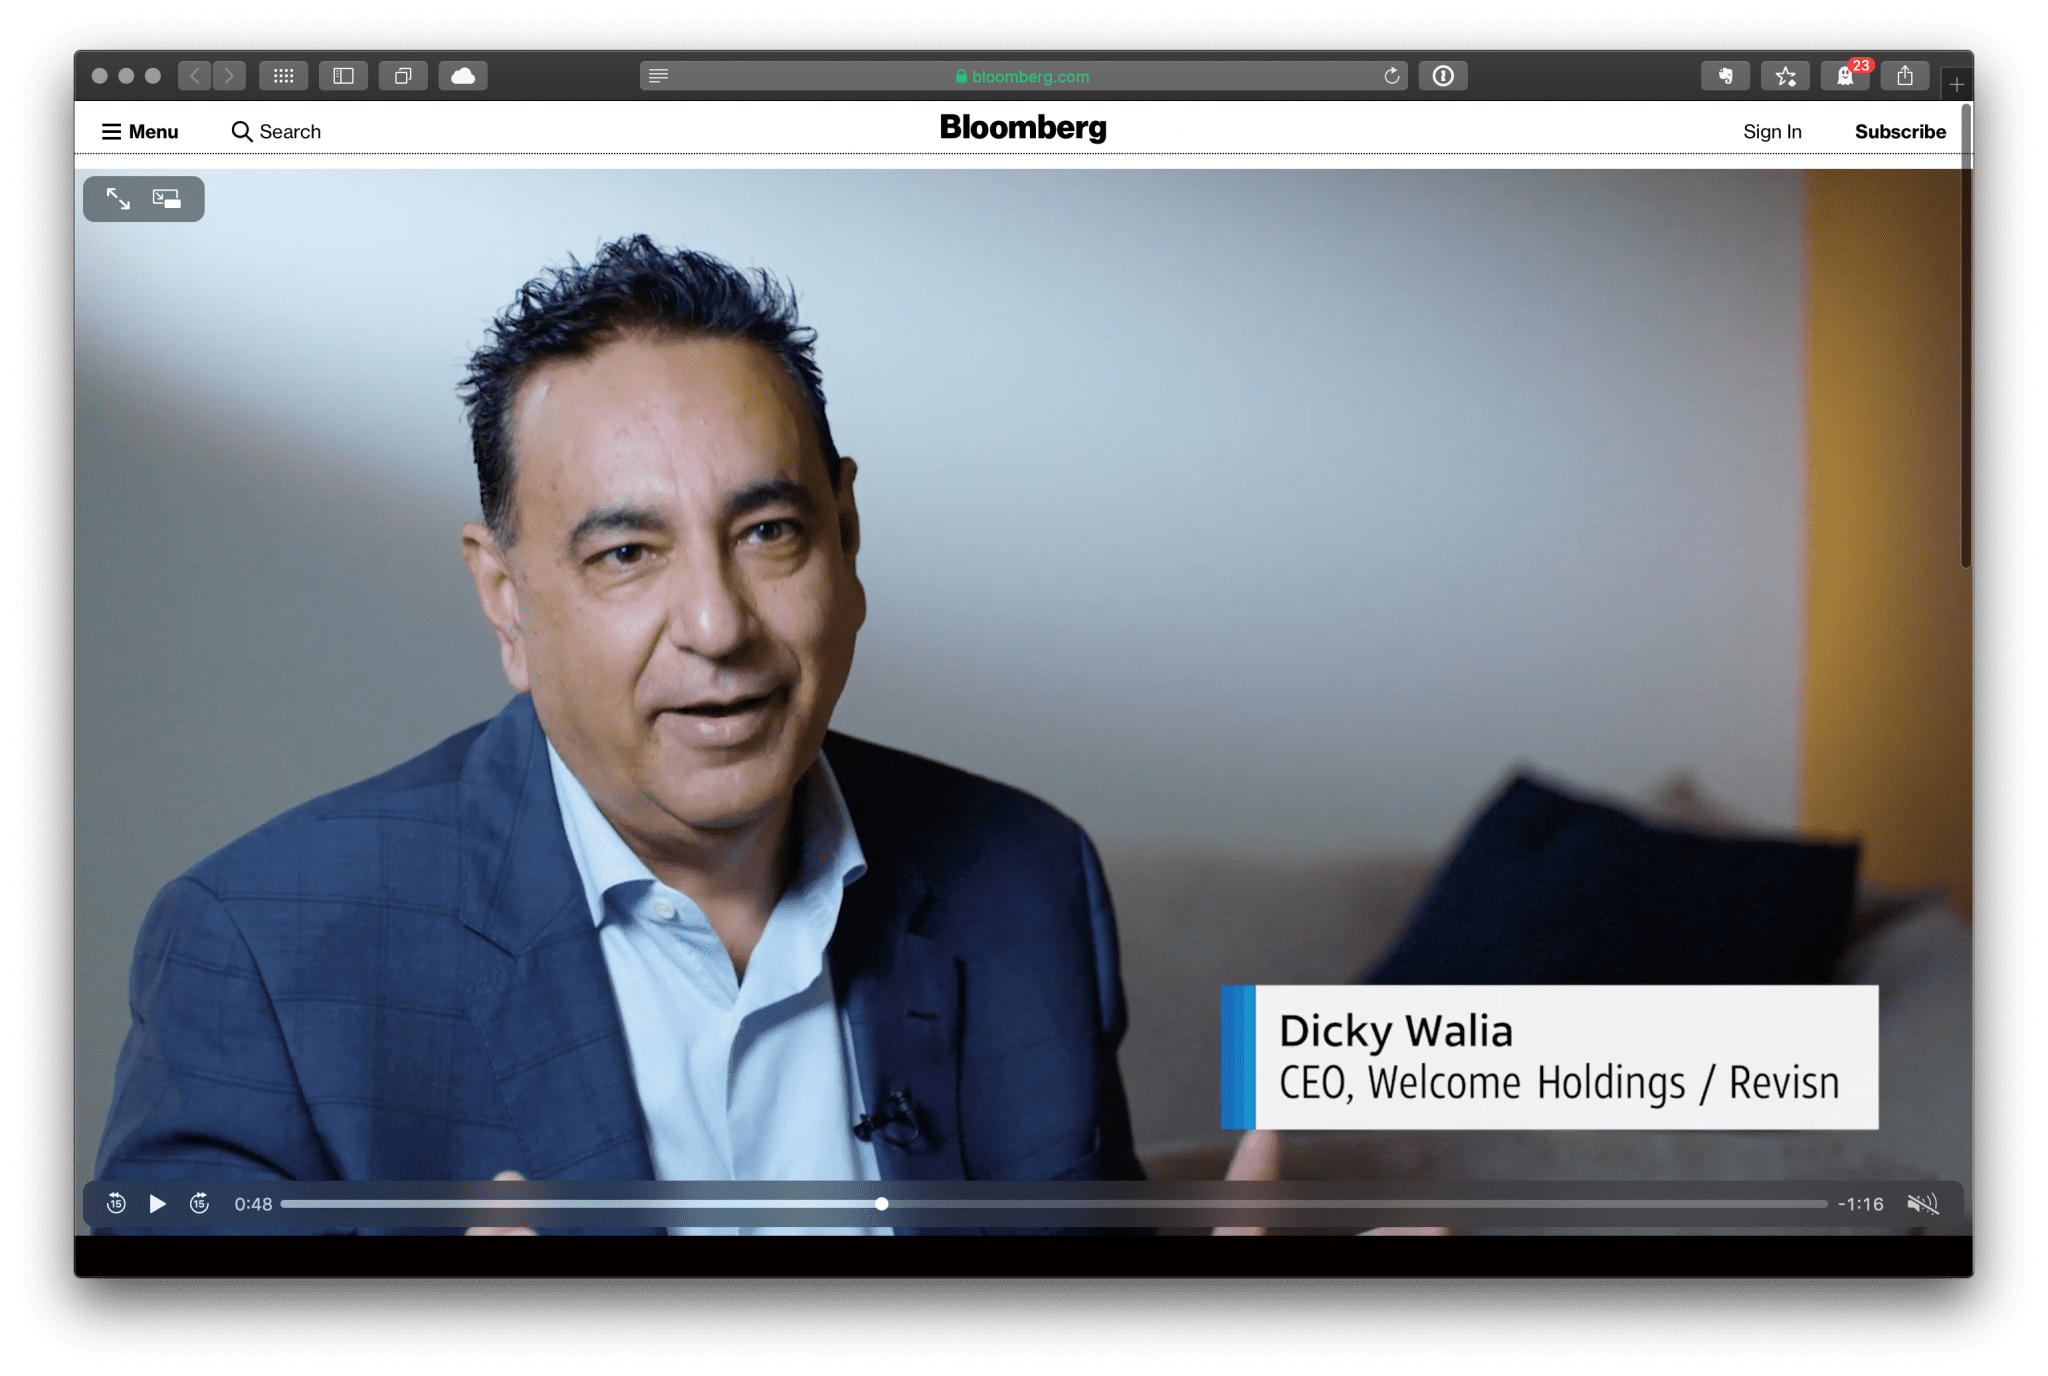 Dicky Walia featured on Bloomberg